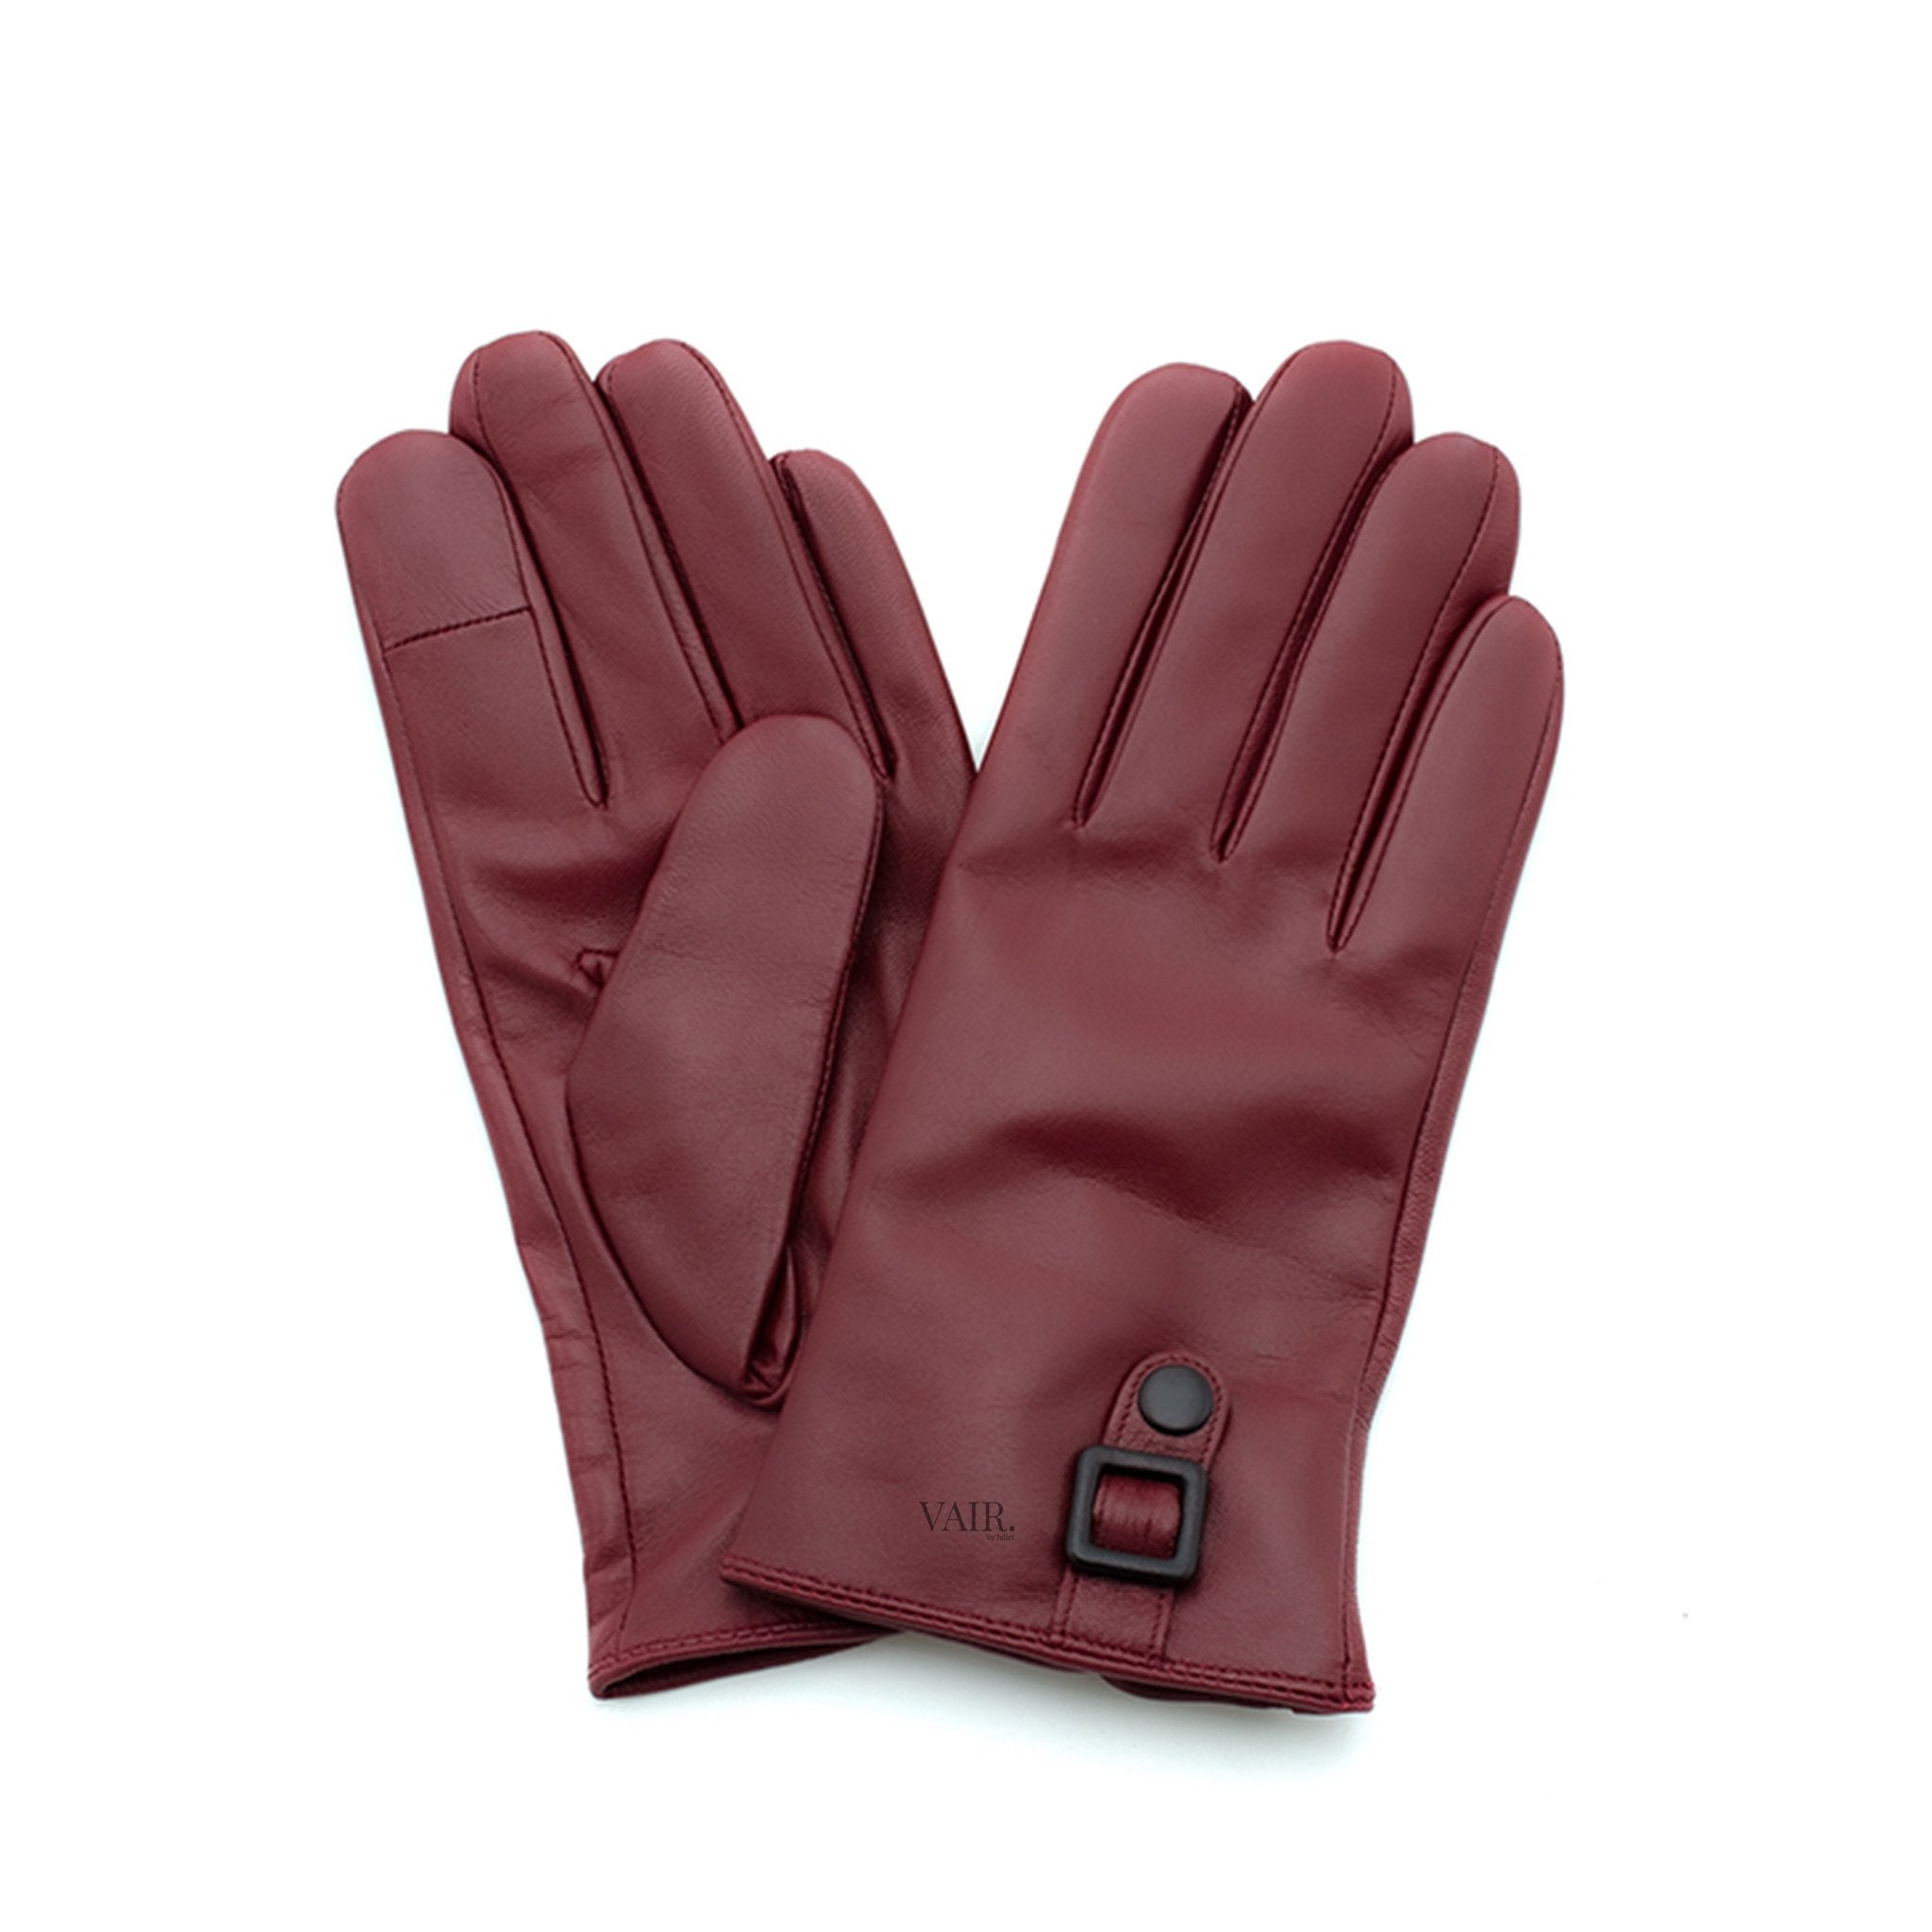 burgundy signature mens leather gloves with cashmere lining by juliette vair